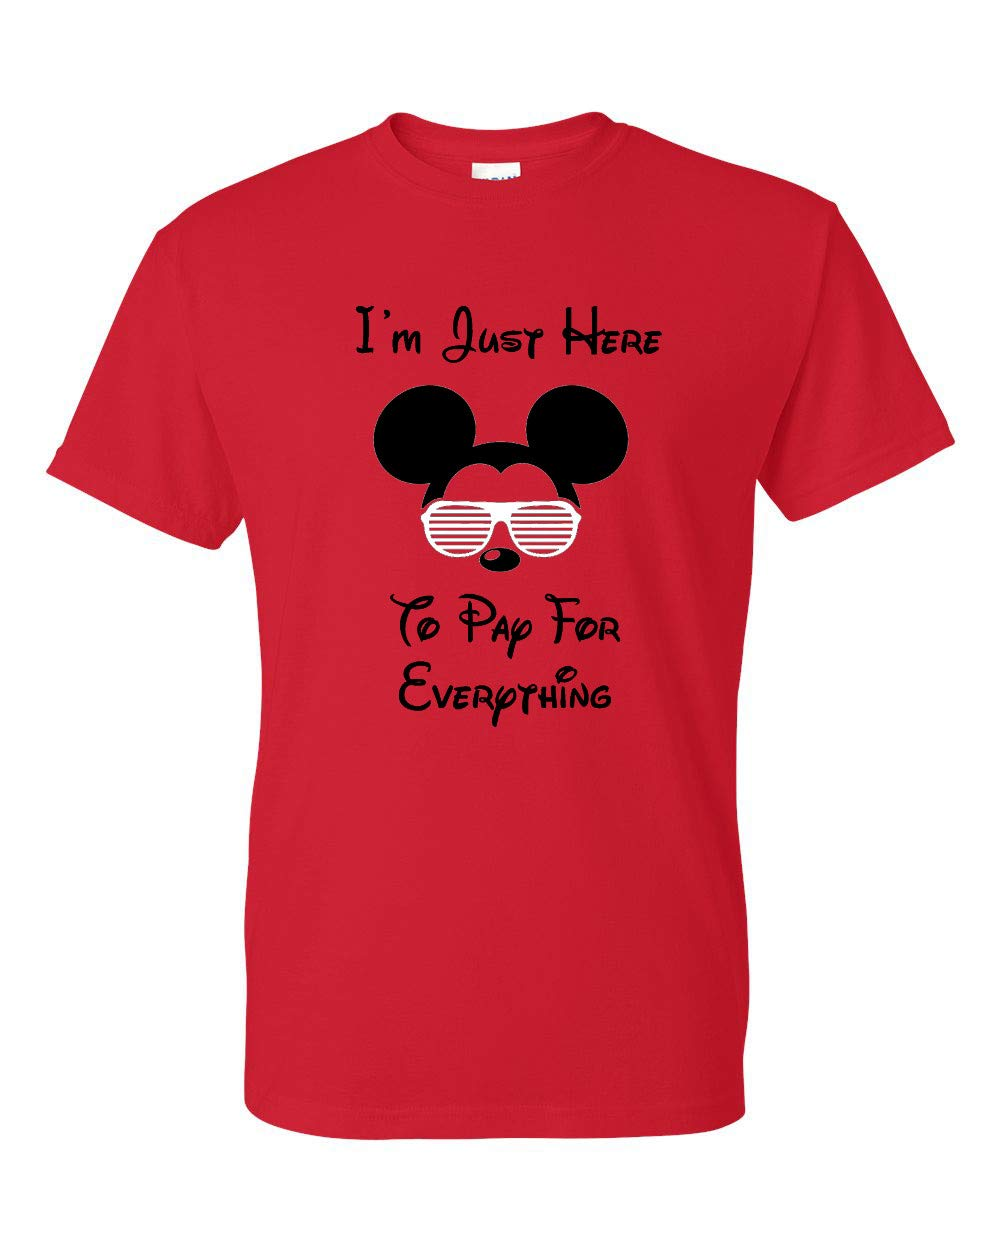 c41e03062 Amazon.com: I'm Just Here To Pay For Everything Funny T-shirt Mens Unisex  Tee: Handmade